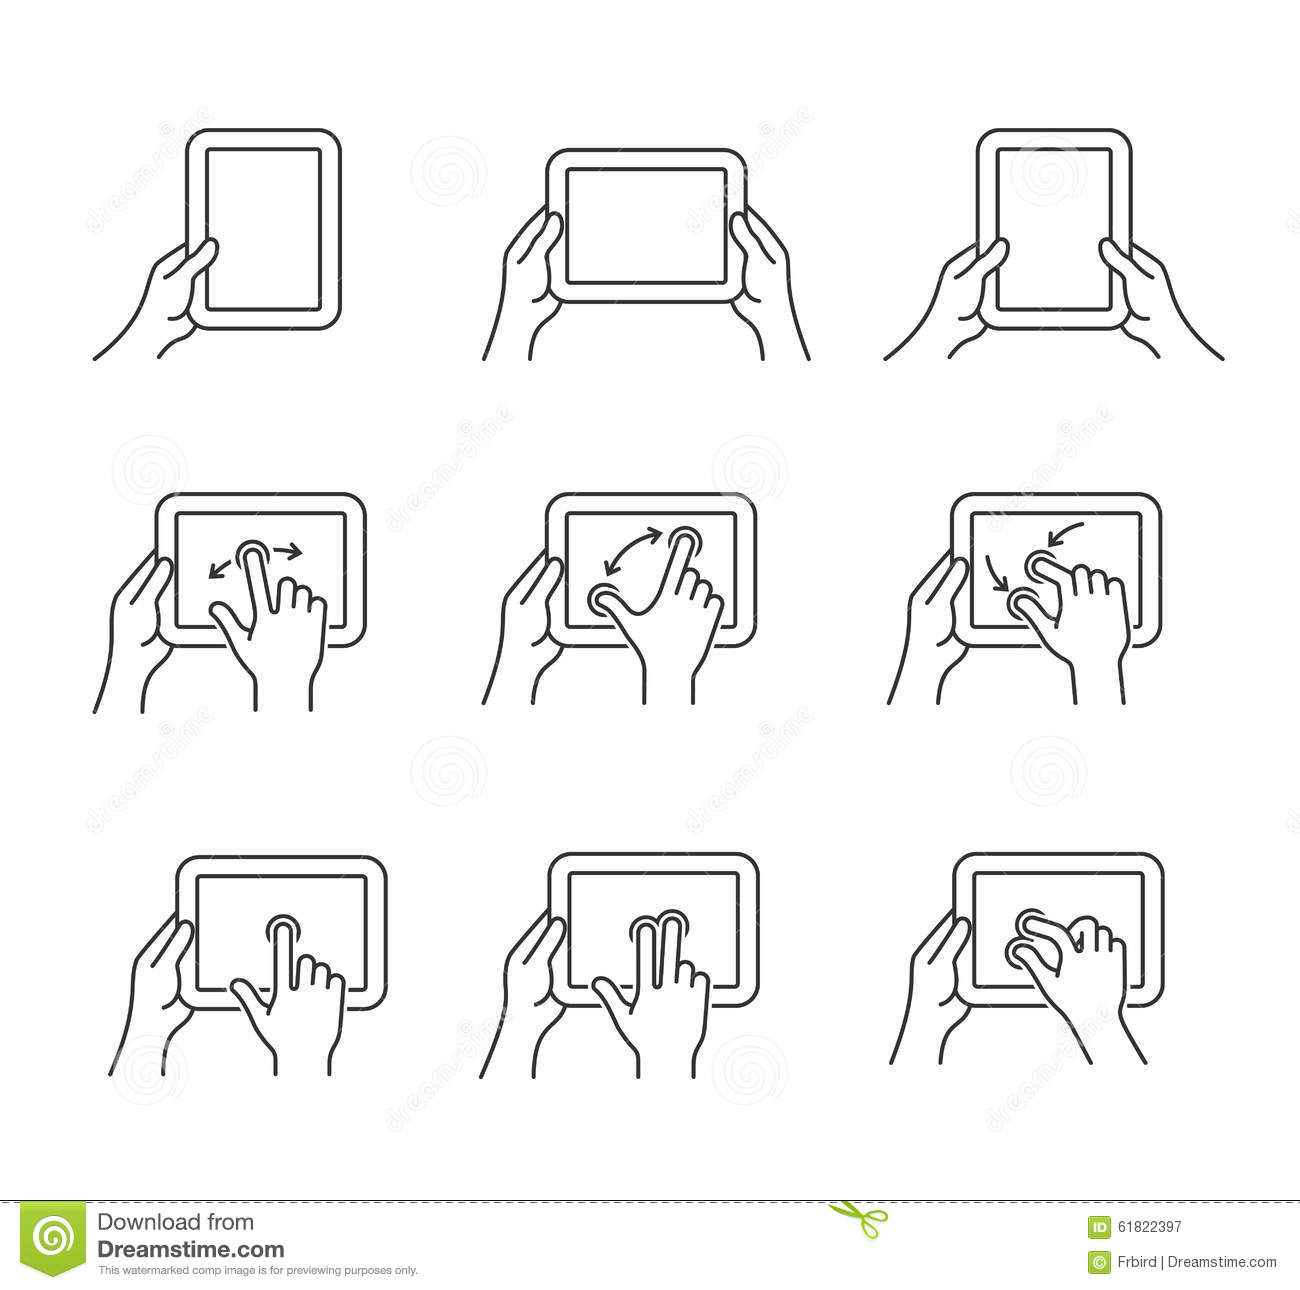 Tablet gesture icons stock illustration. Illustration of